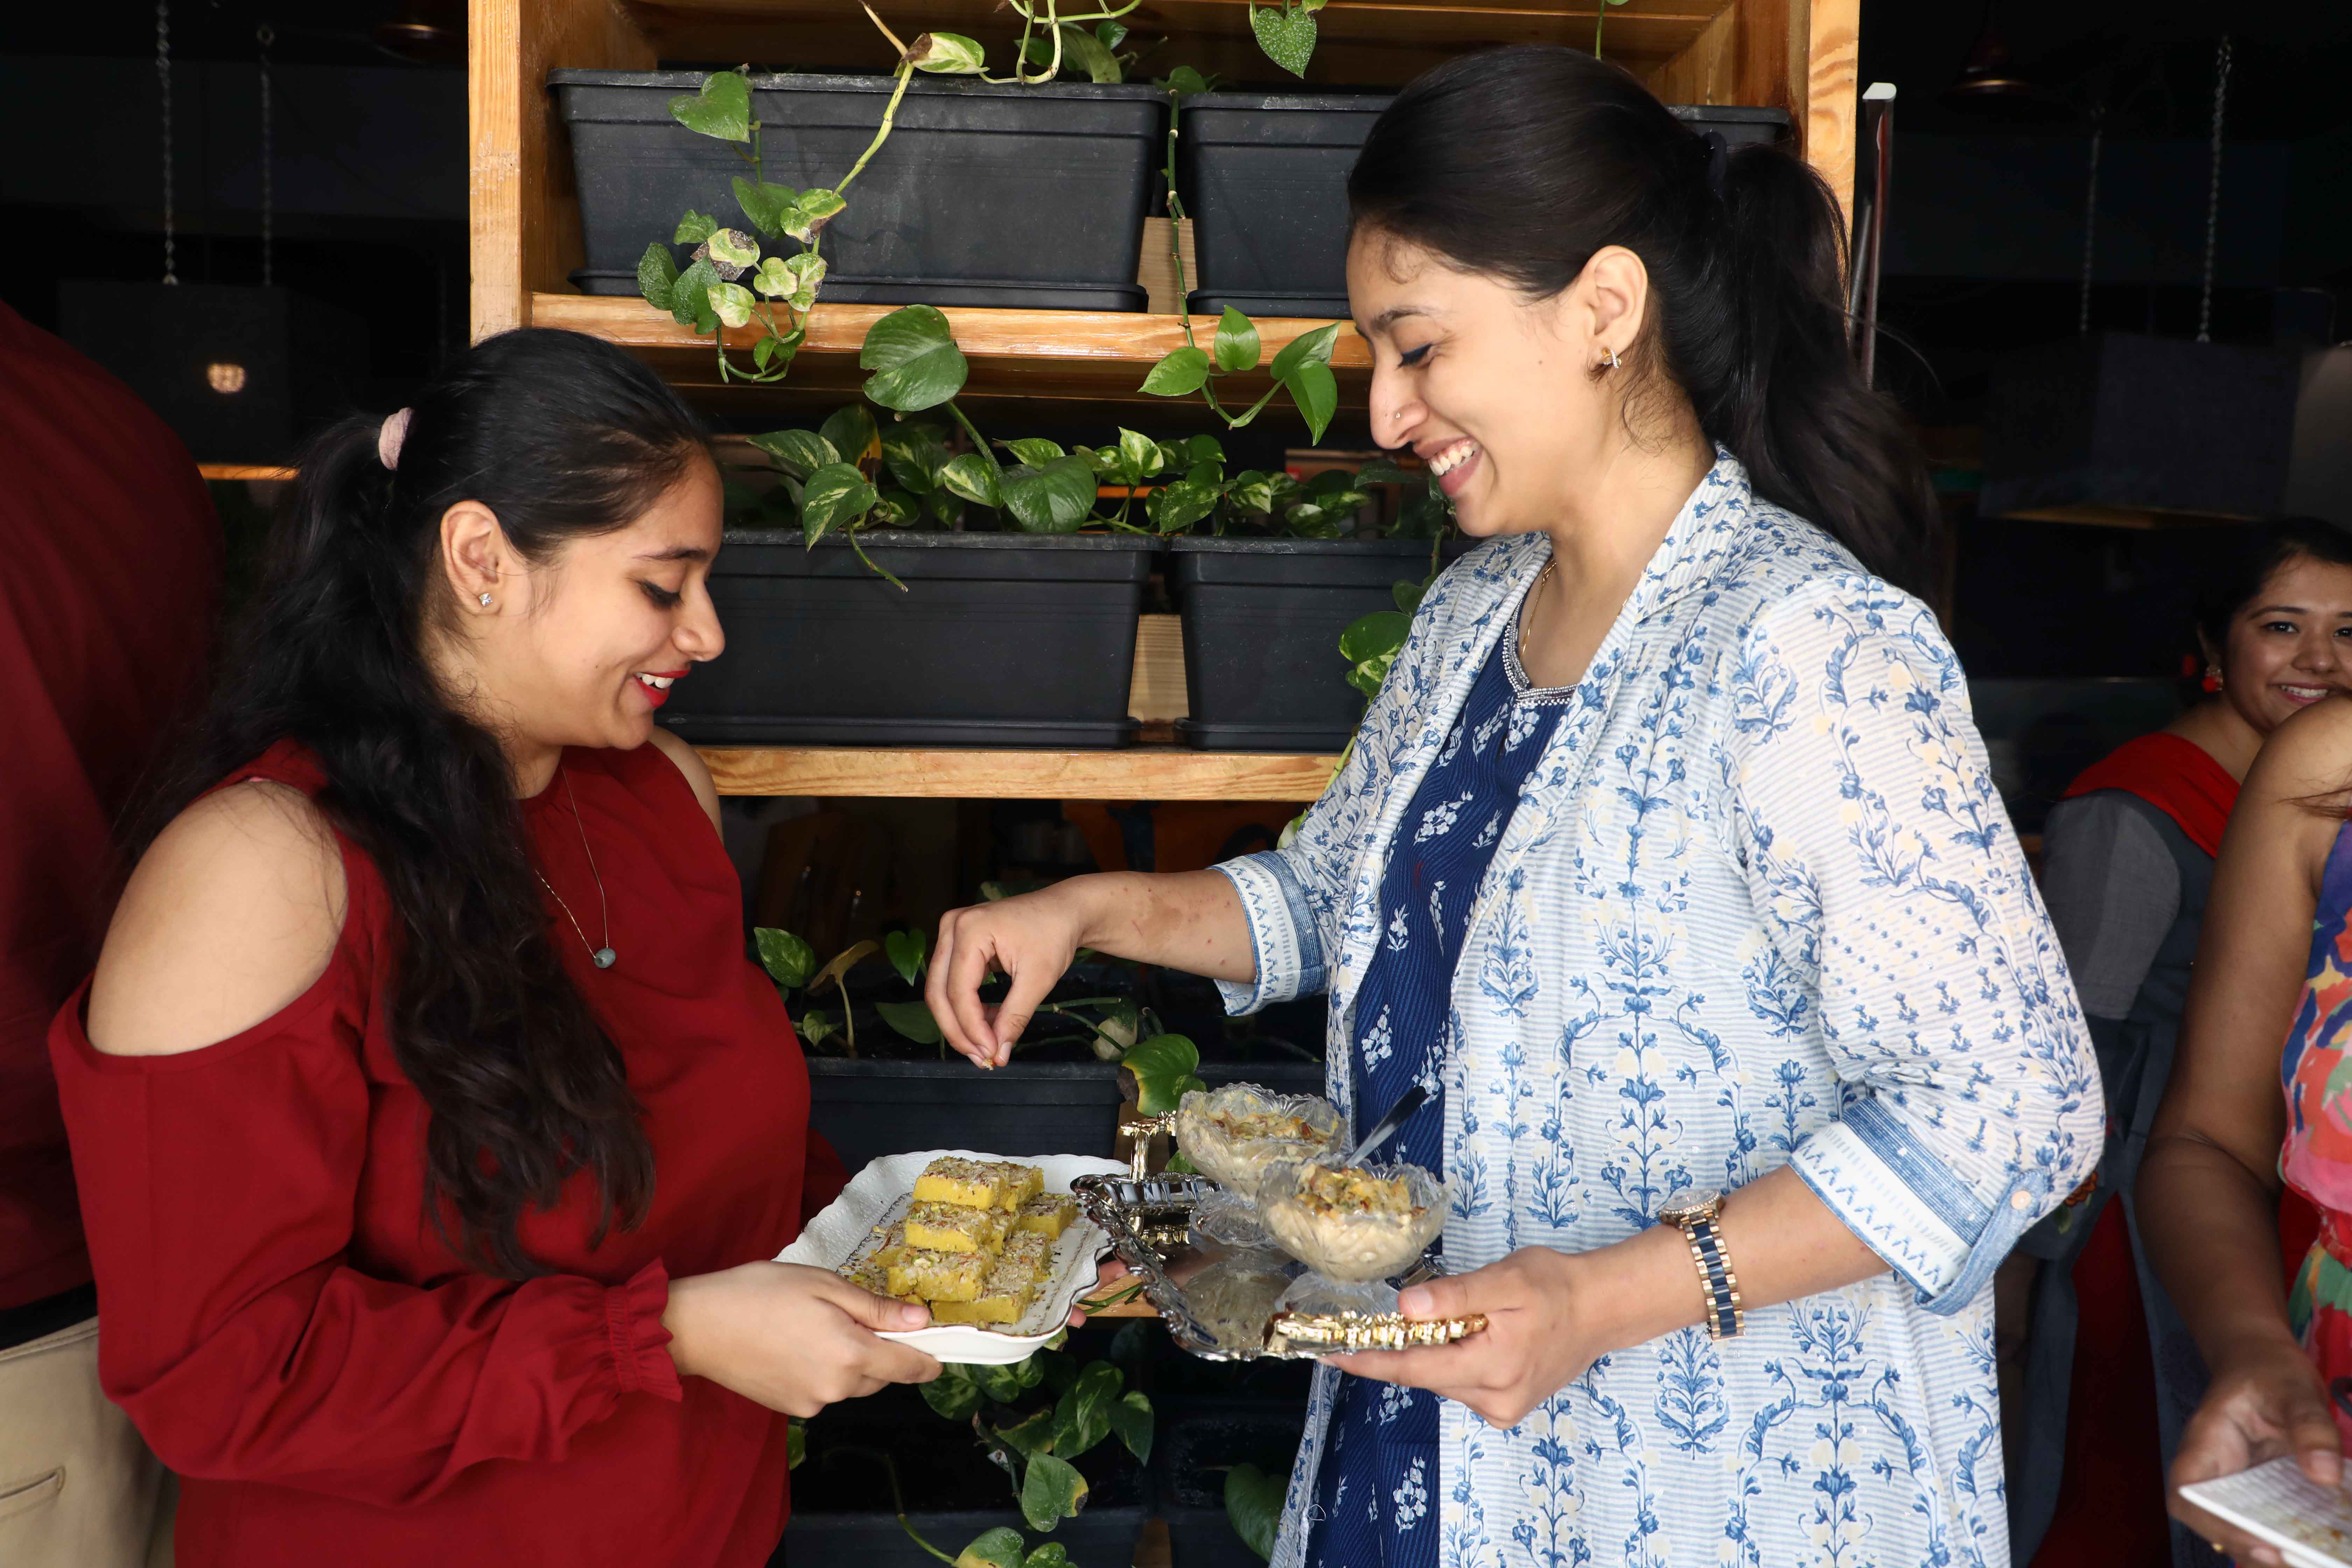 Sabiha Munnaquib and Khadeeja Memon exchange notes and recipes of the dishes they prepared (2)